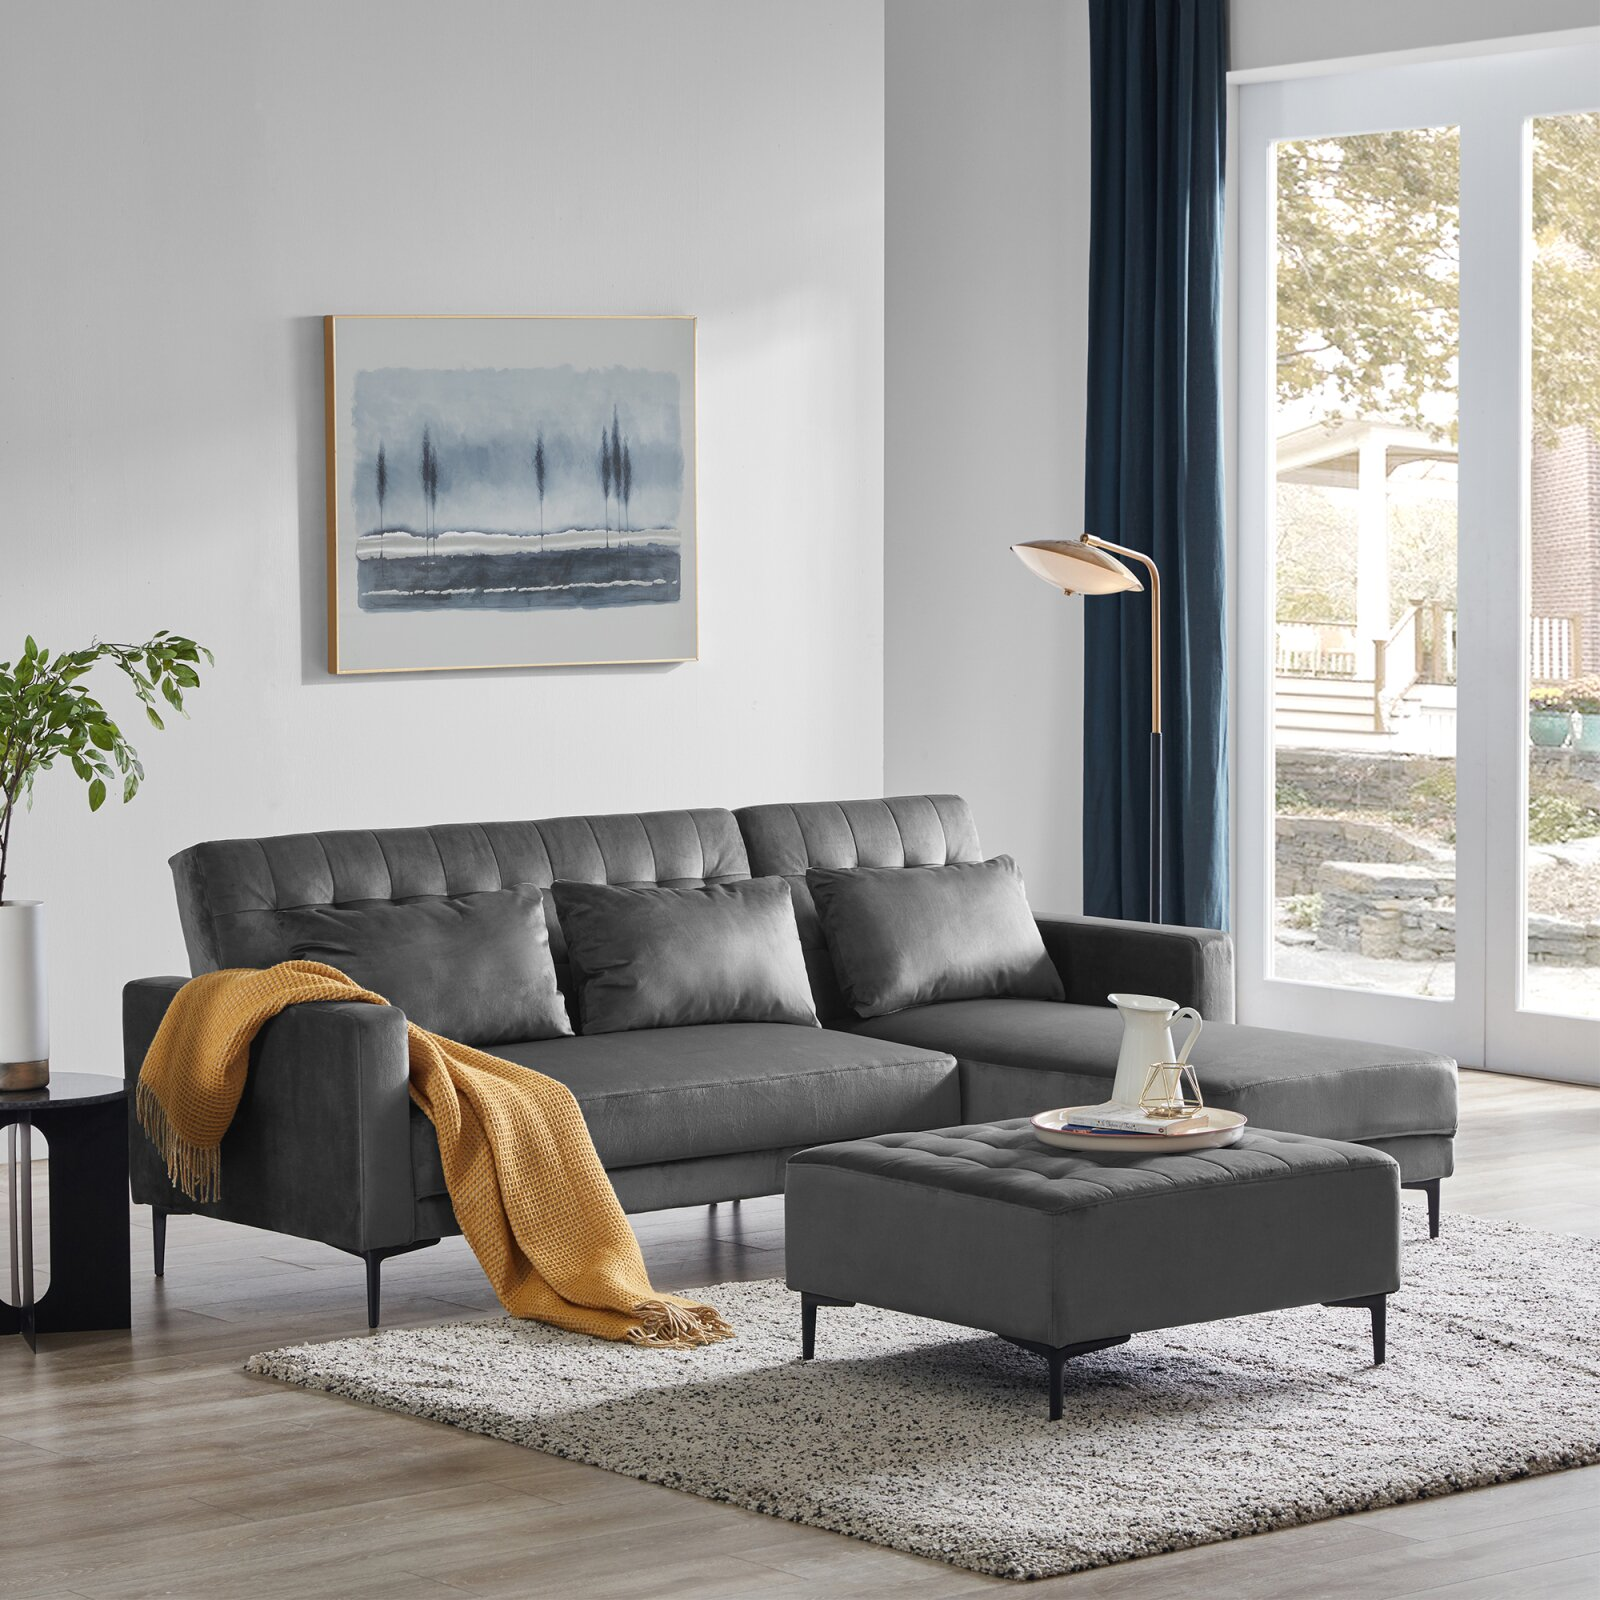 86-inch-small-sectional-sleeper-sofa-grey-upholstery-couch-with-chaise-and-ottoman-space-saving-furniture-for-modern-apartments